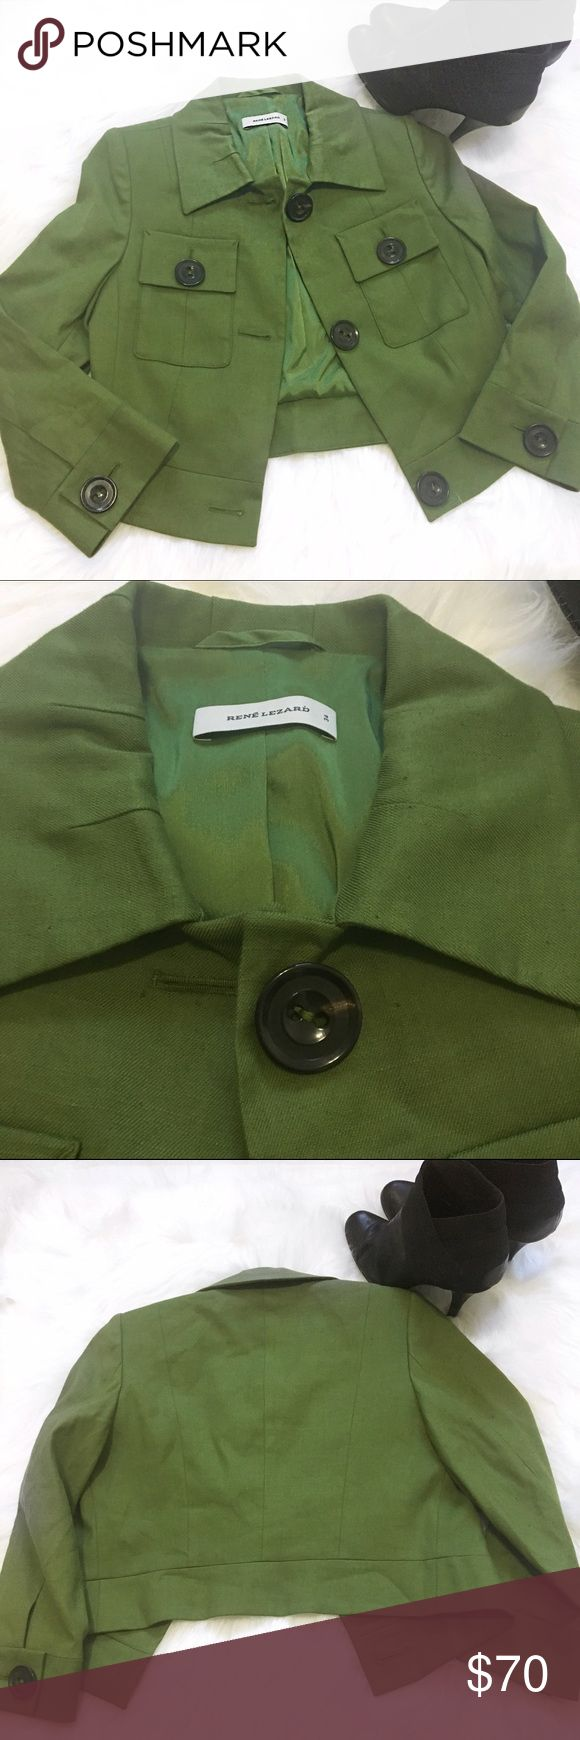 René Lezard Olive Green Blazer A gorgeous olive green colored blazer by René Lezard. Bust:32in🔹Length:17 1/2🔹The blazer is in great condition with the only small defect os the first button has a small mark as shown on the 2nd picture. René Lezard Jackets & Coats Blazers